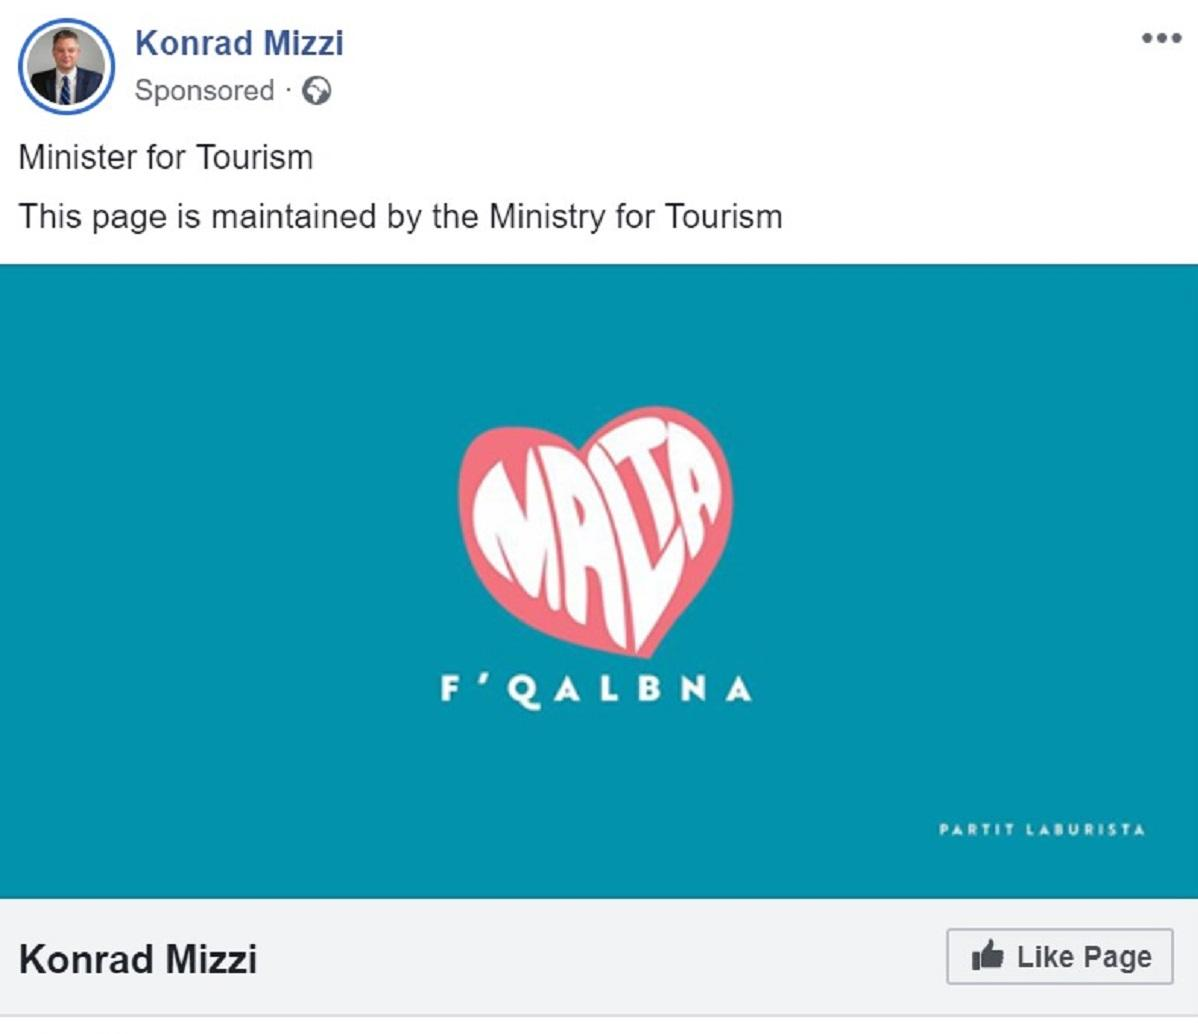 Dr Mizzi's personal Facebook page was being administered through the use of public resources within his own ministry.